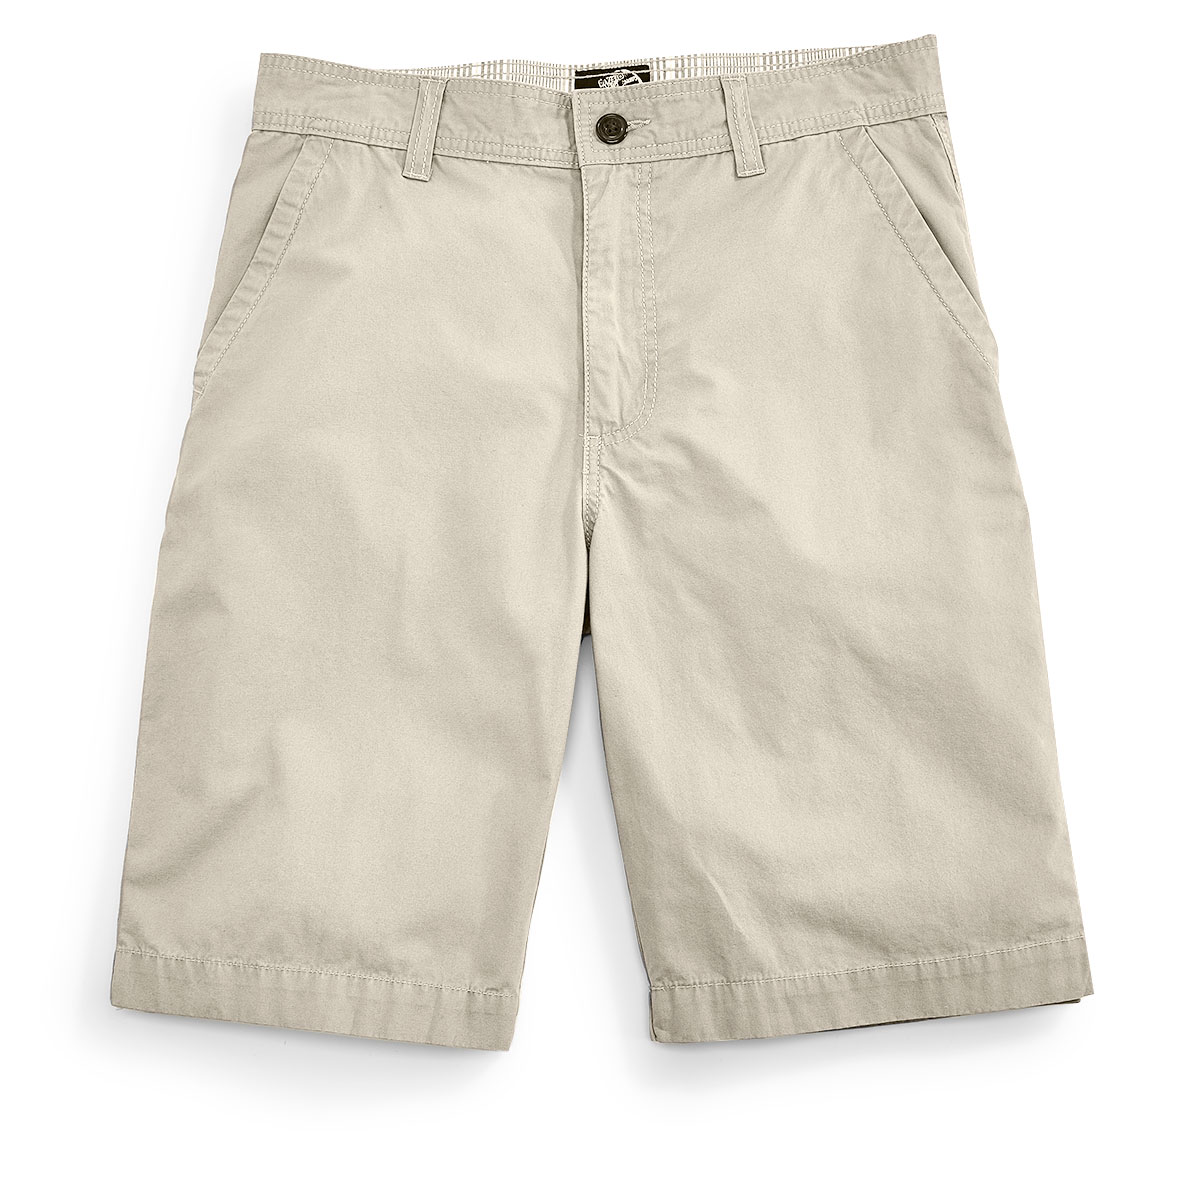 D55 Guys' Flat Front Shorts - Brown, 31